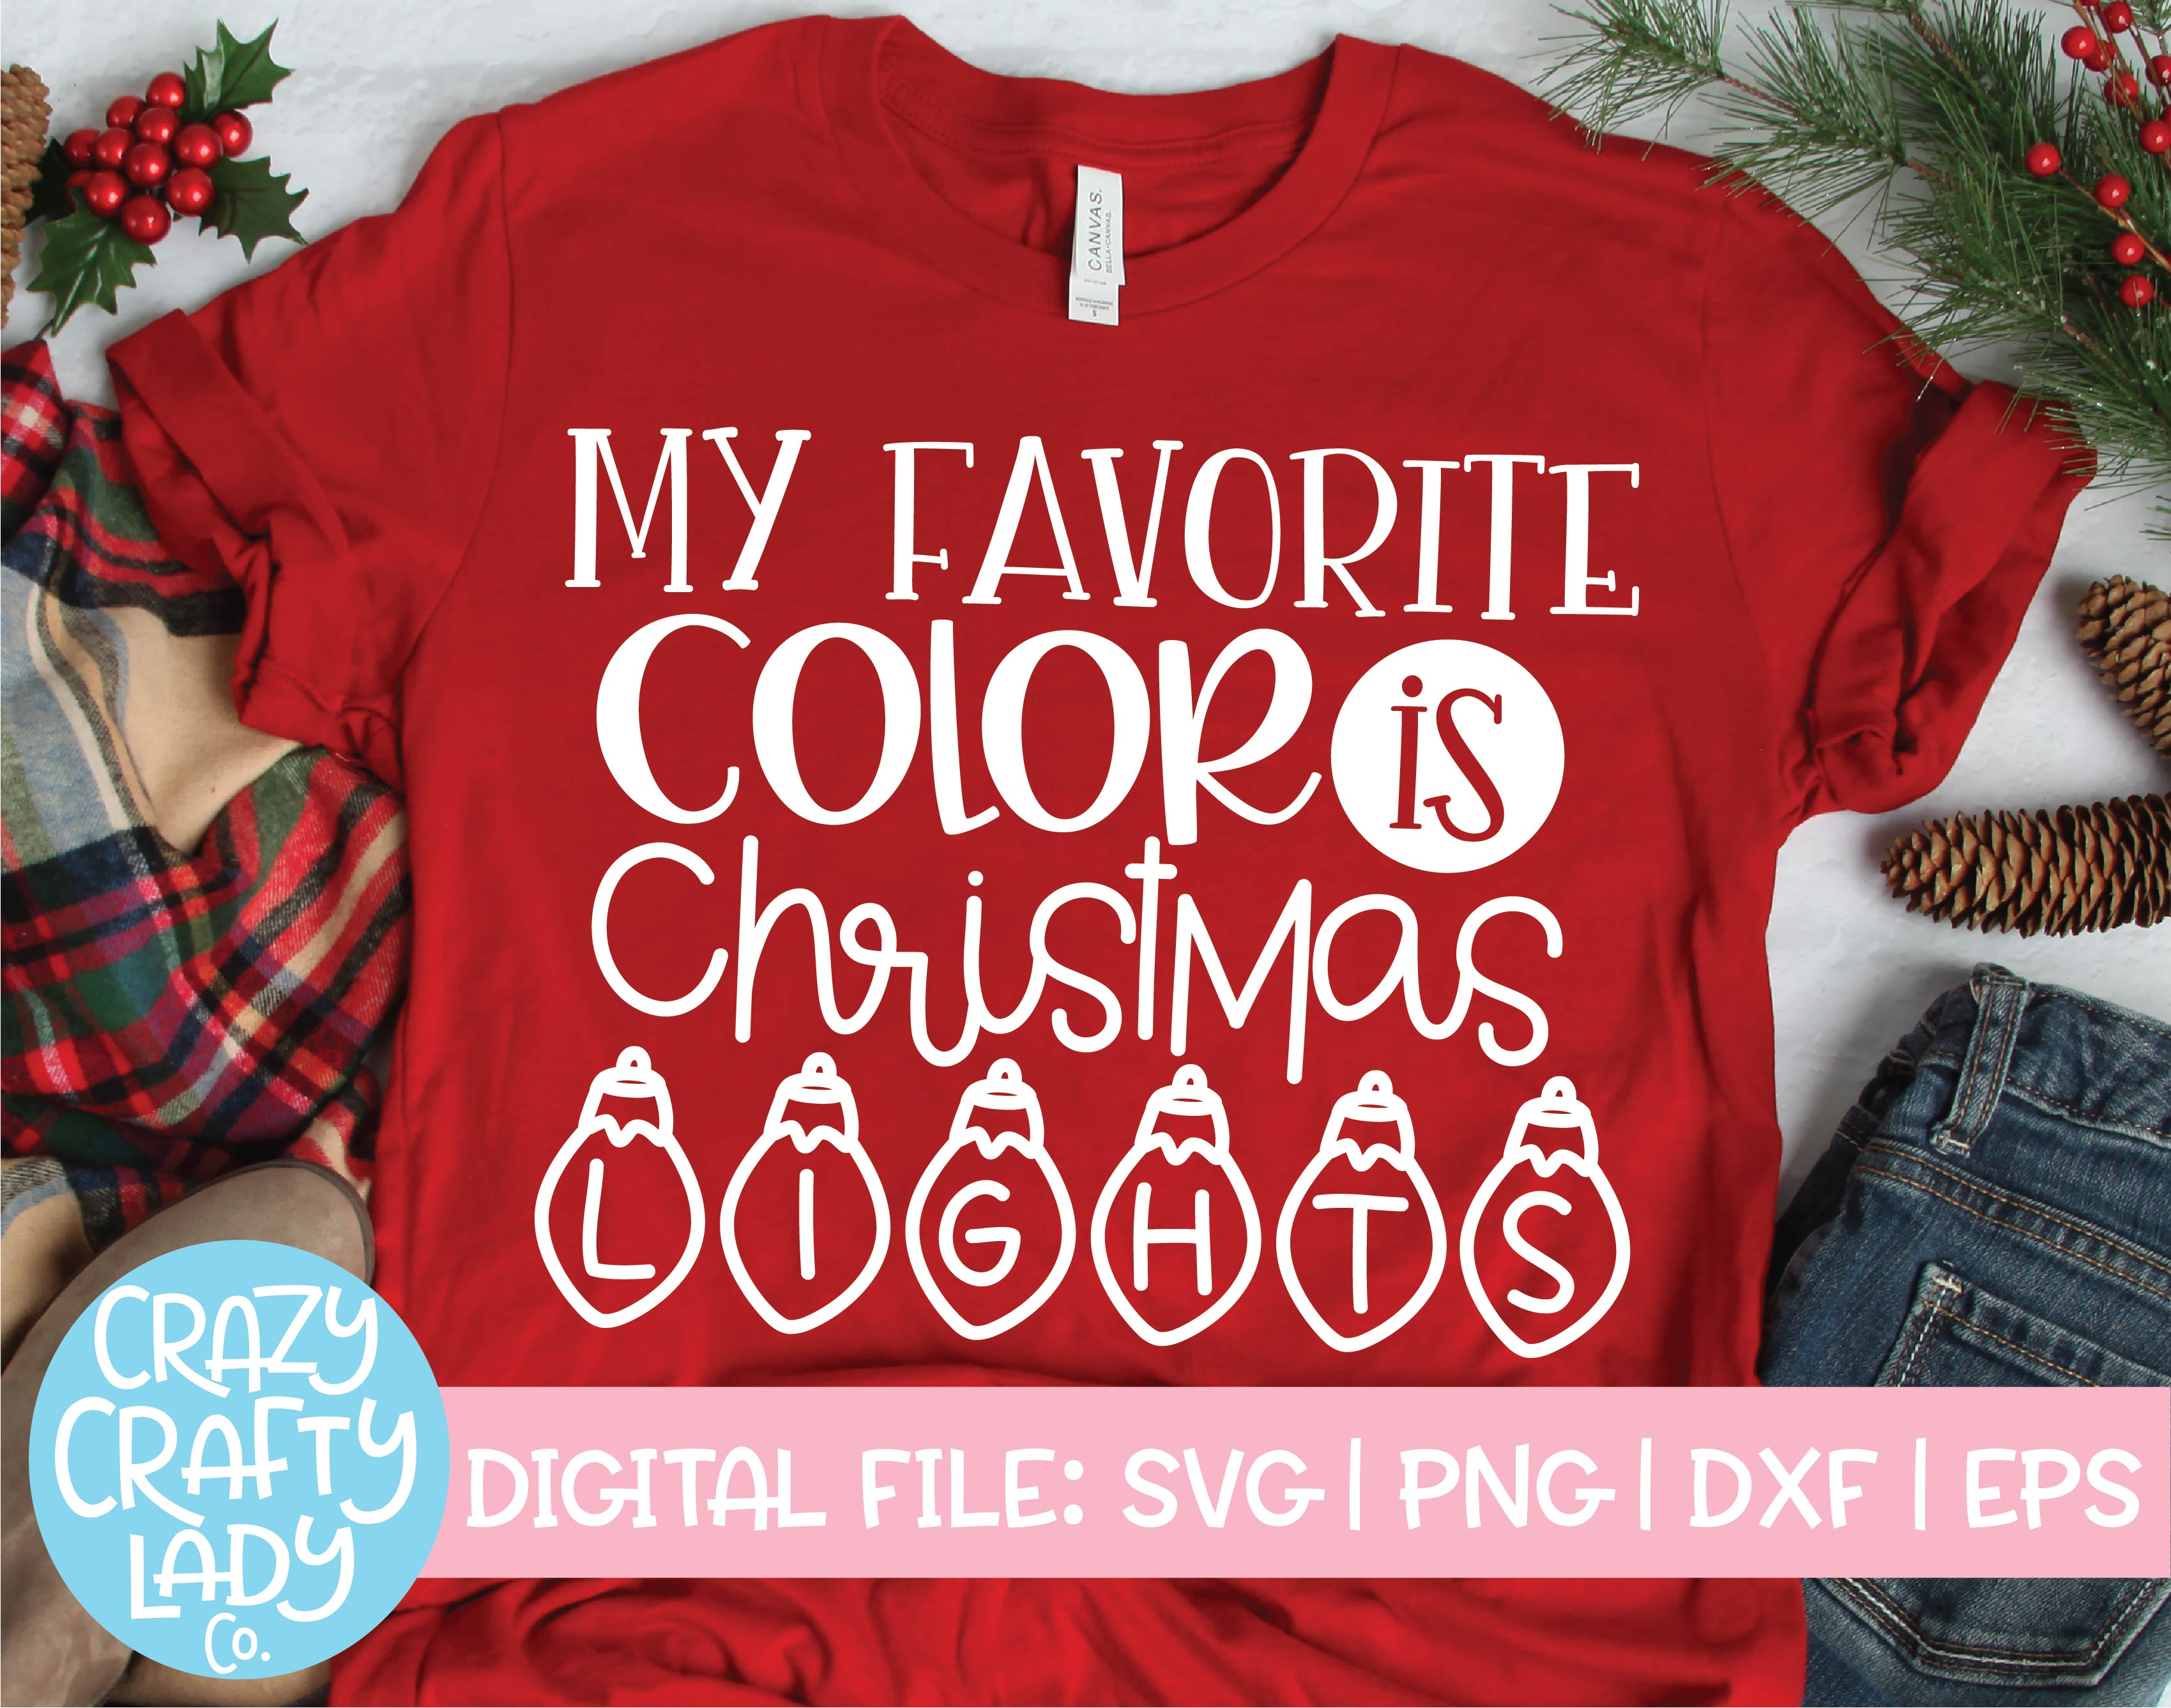 My Favorite Color Is Christmas Lights Svg Cut File Crazy Crafty Lady Co